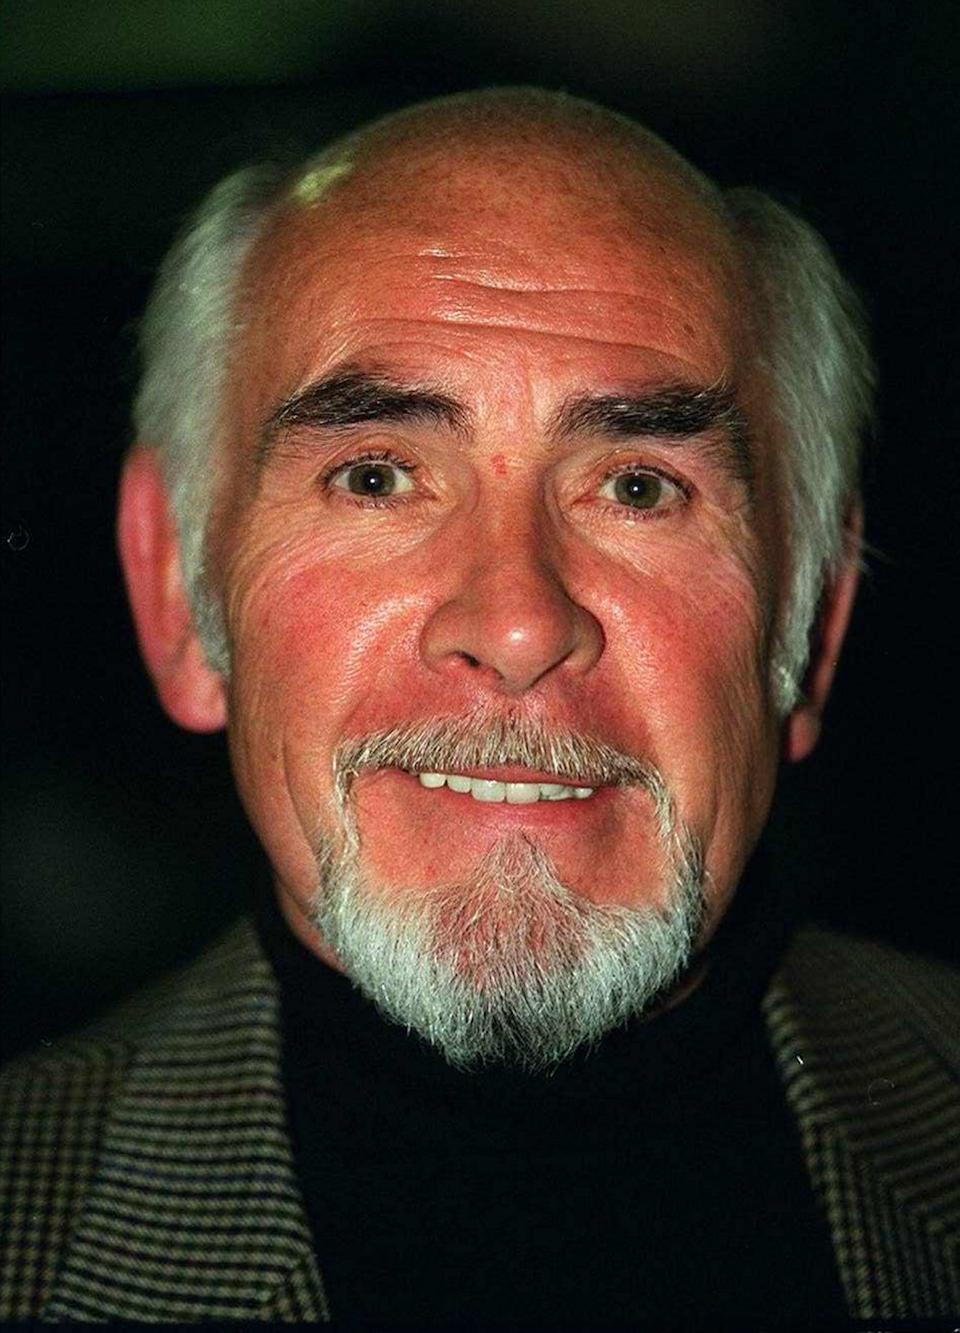 Neil Connery brother of actor Sean Connery with beard April 1997 (Photo by mirrorpix/Mirrorpix/Mirrorpix via Getty Images)